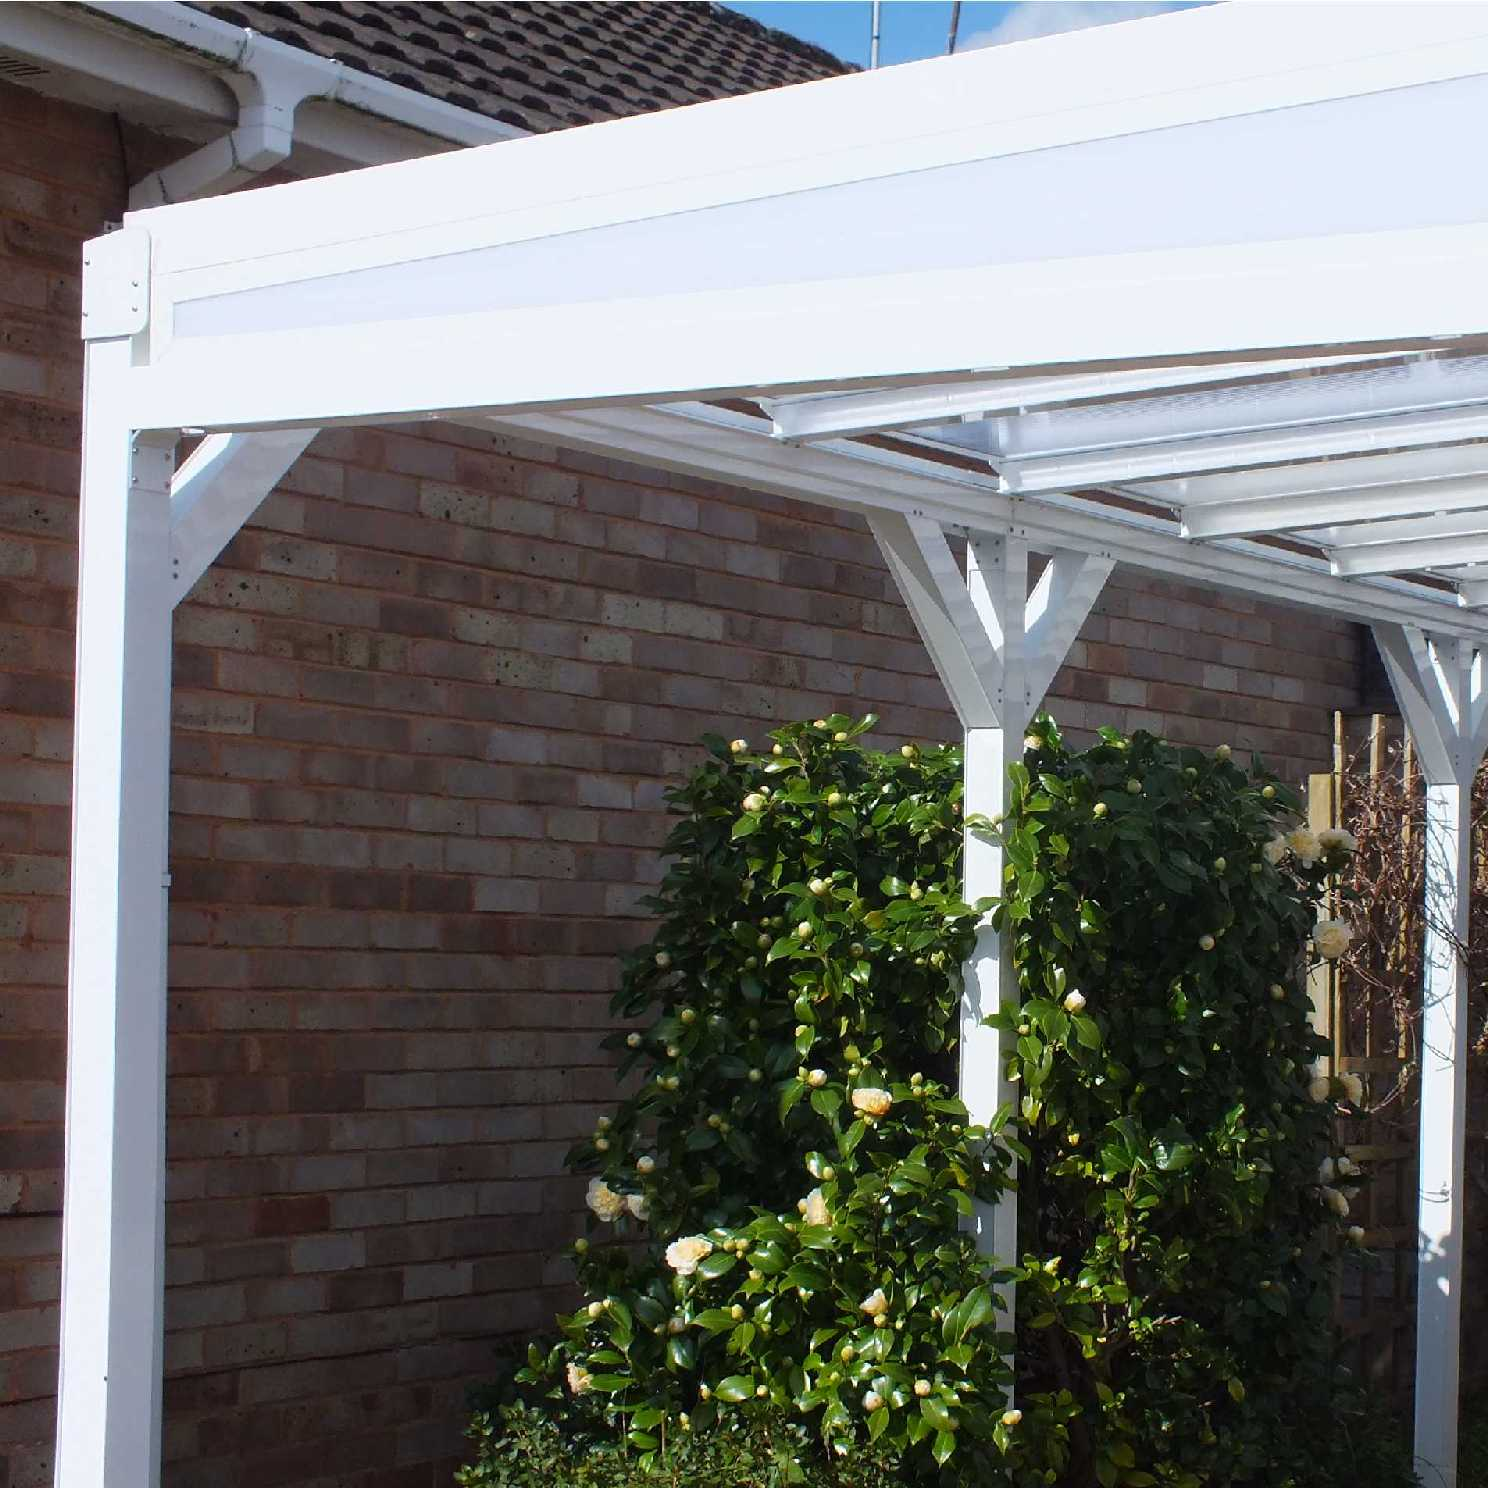 Omega Smart White Lean-To Canopy with 16mm Polycarbonate Glazing - 7.4m (W) x 2.0m (P), (4) Supporting Posts from Omega Build